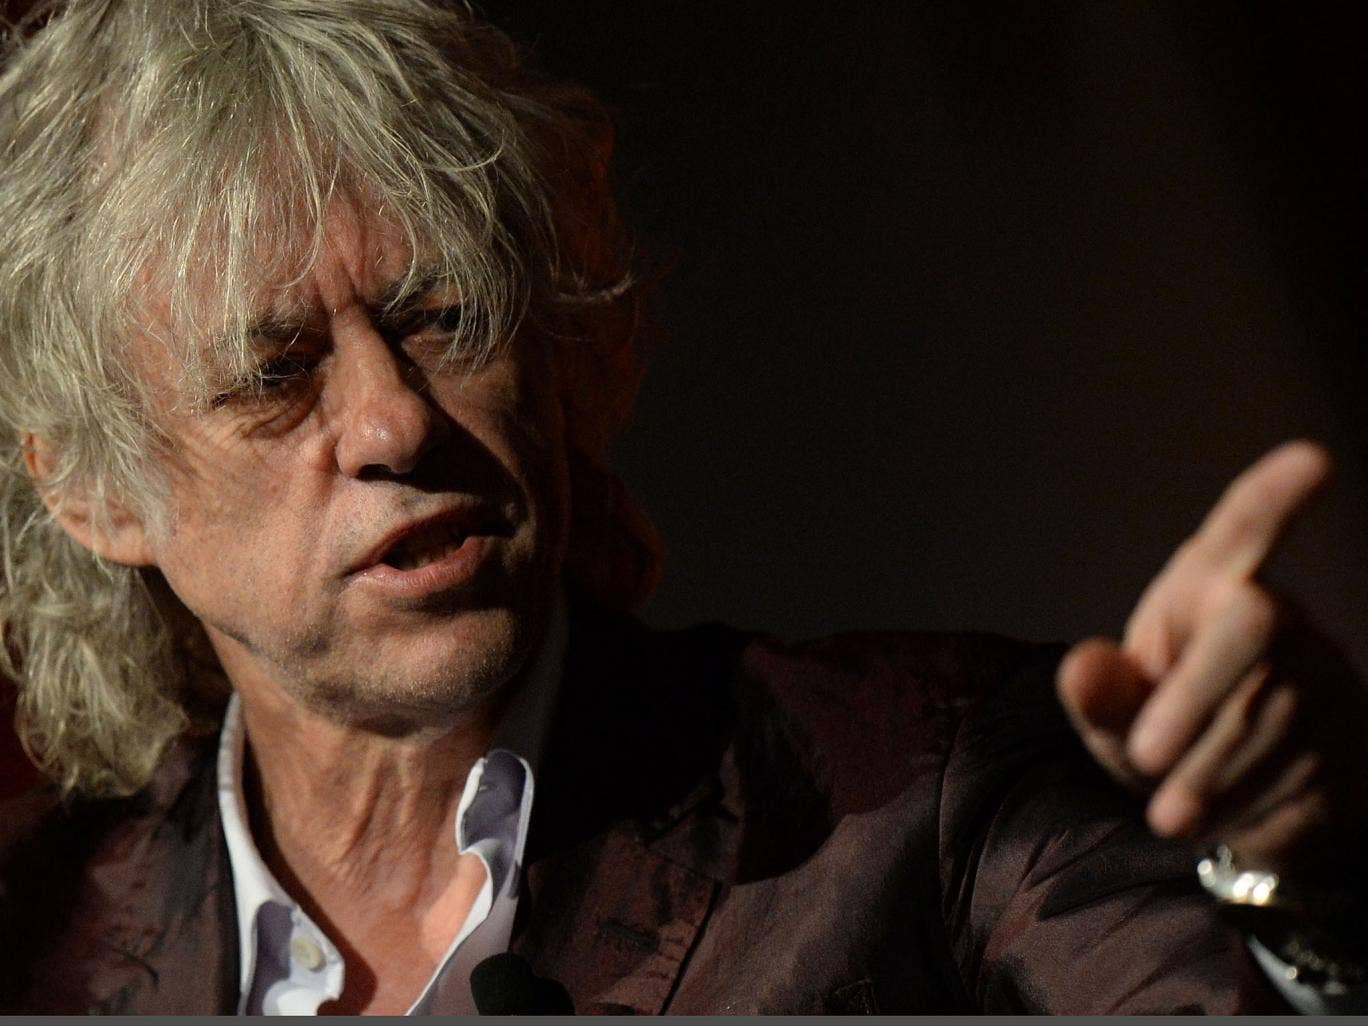 The veteran poverty campaigner Sir Bob Geldof issues a stark challenge to emerging economies at the Melbourne HIV/Aids conference